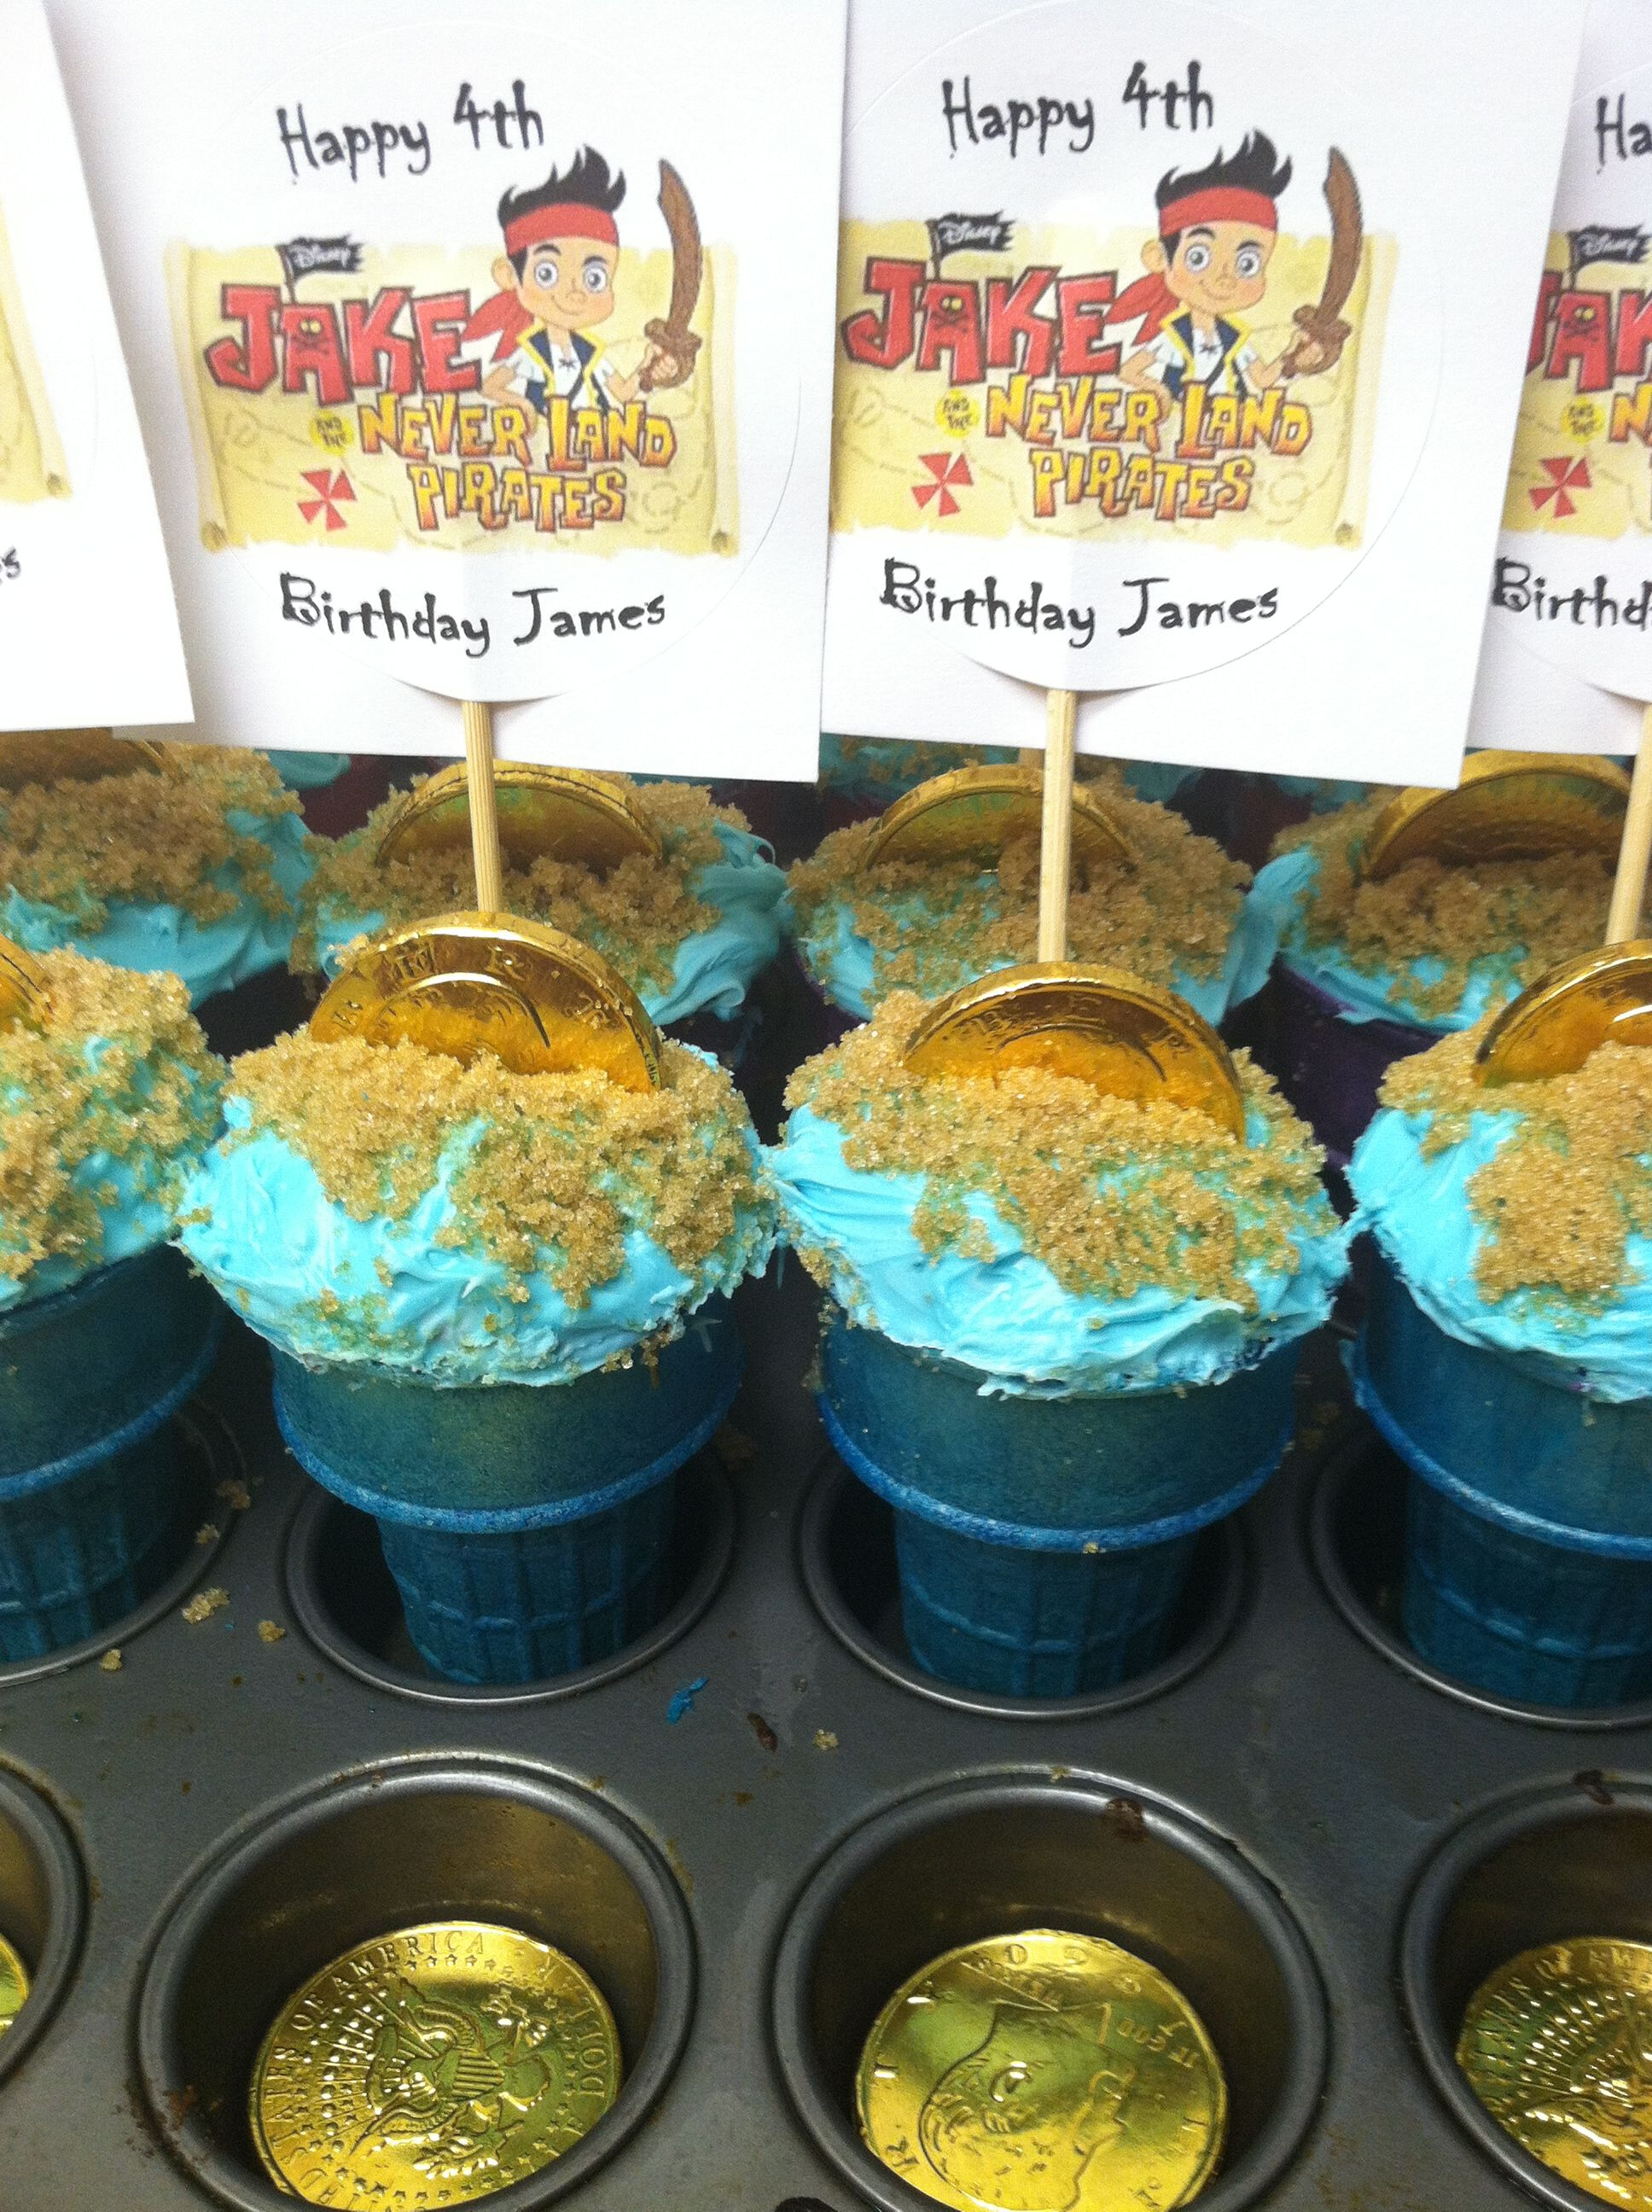 Tremendous My Cupcakes For James Jake And The Neverland Pirates 4Th Birthday Funny Birthday Cards Online Inifofree Goldxyz